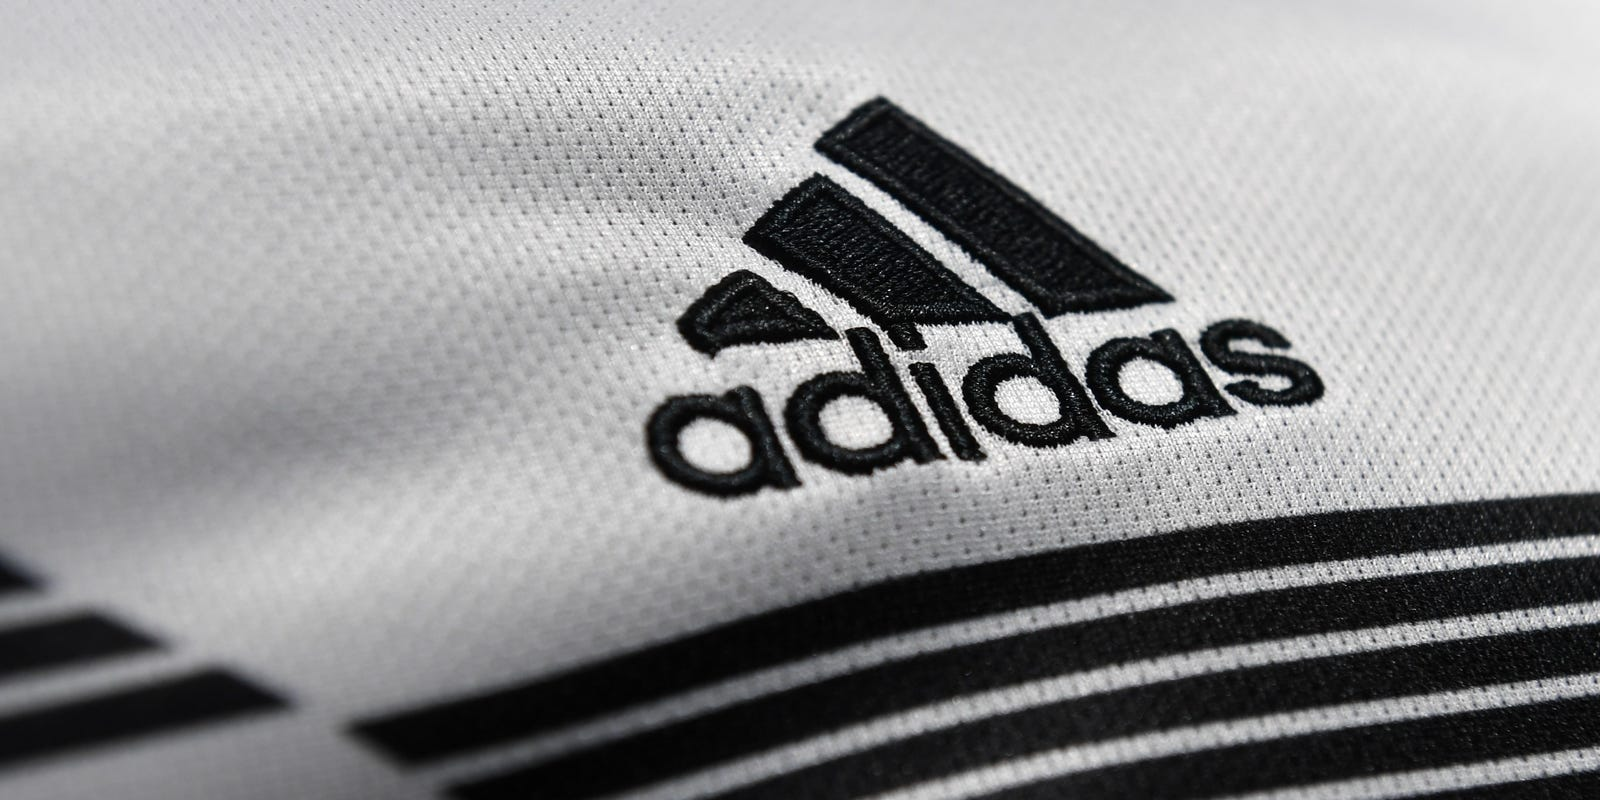 adidas ethics violations